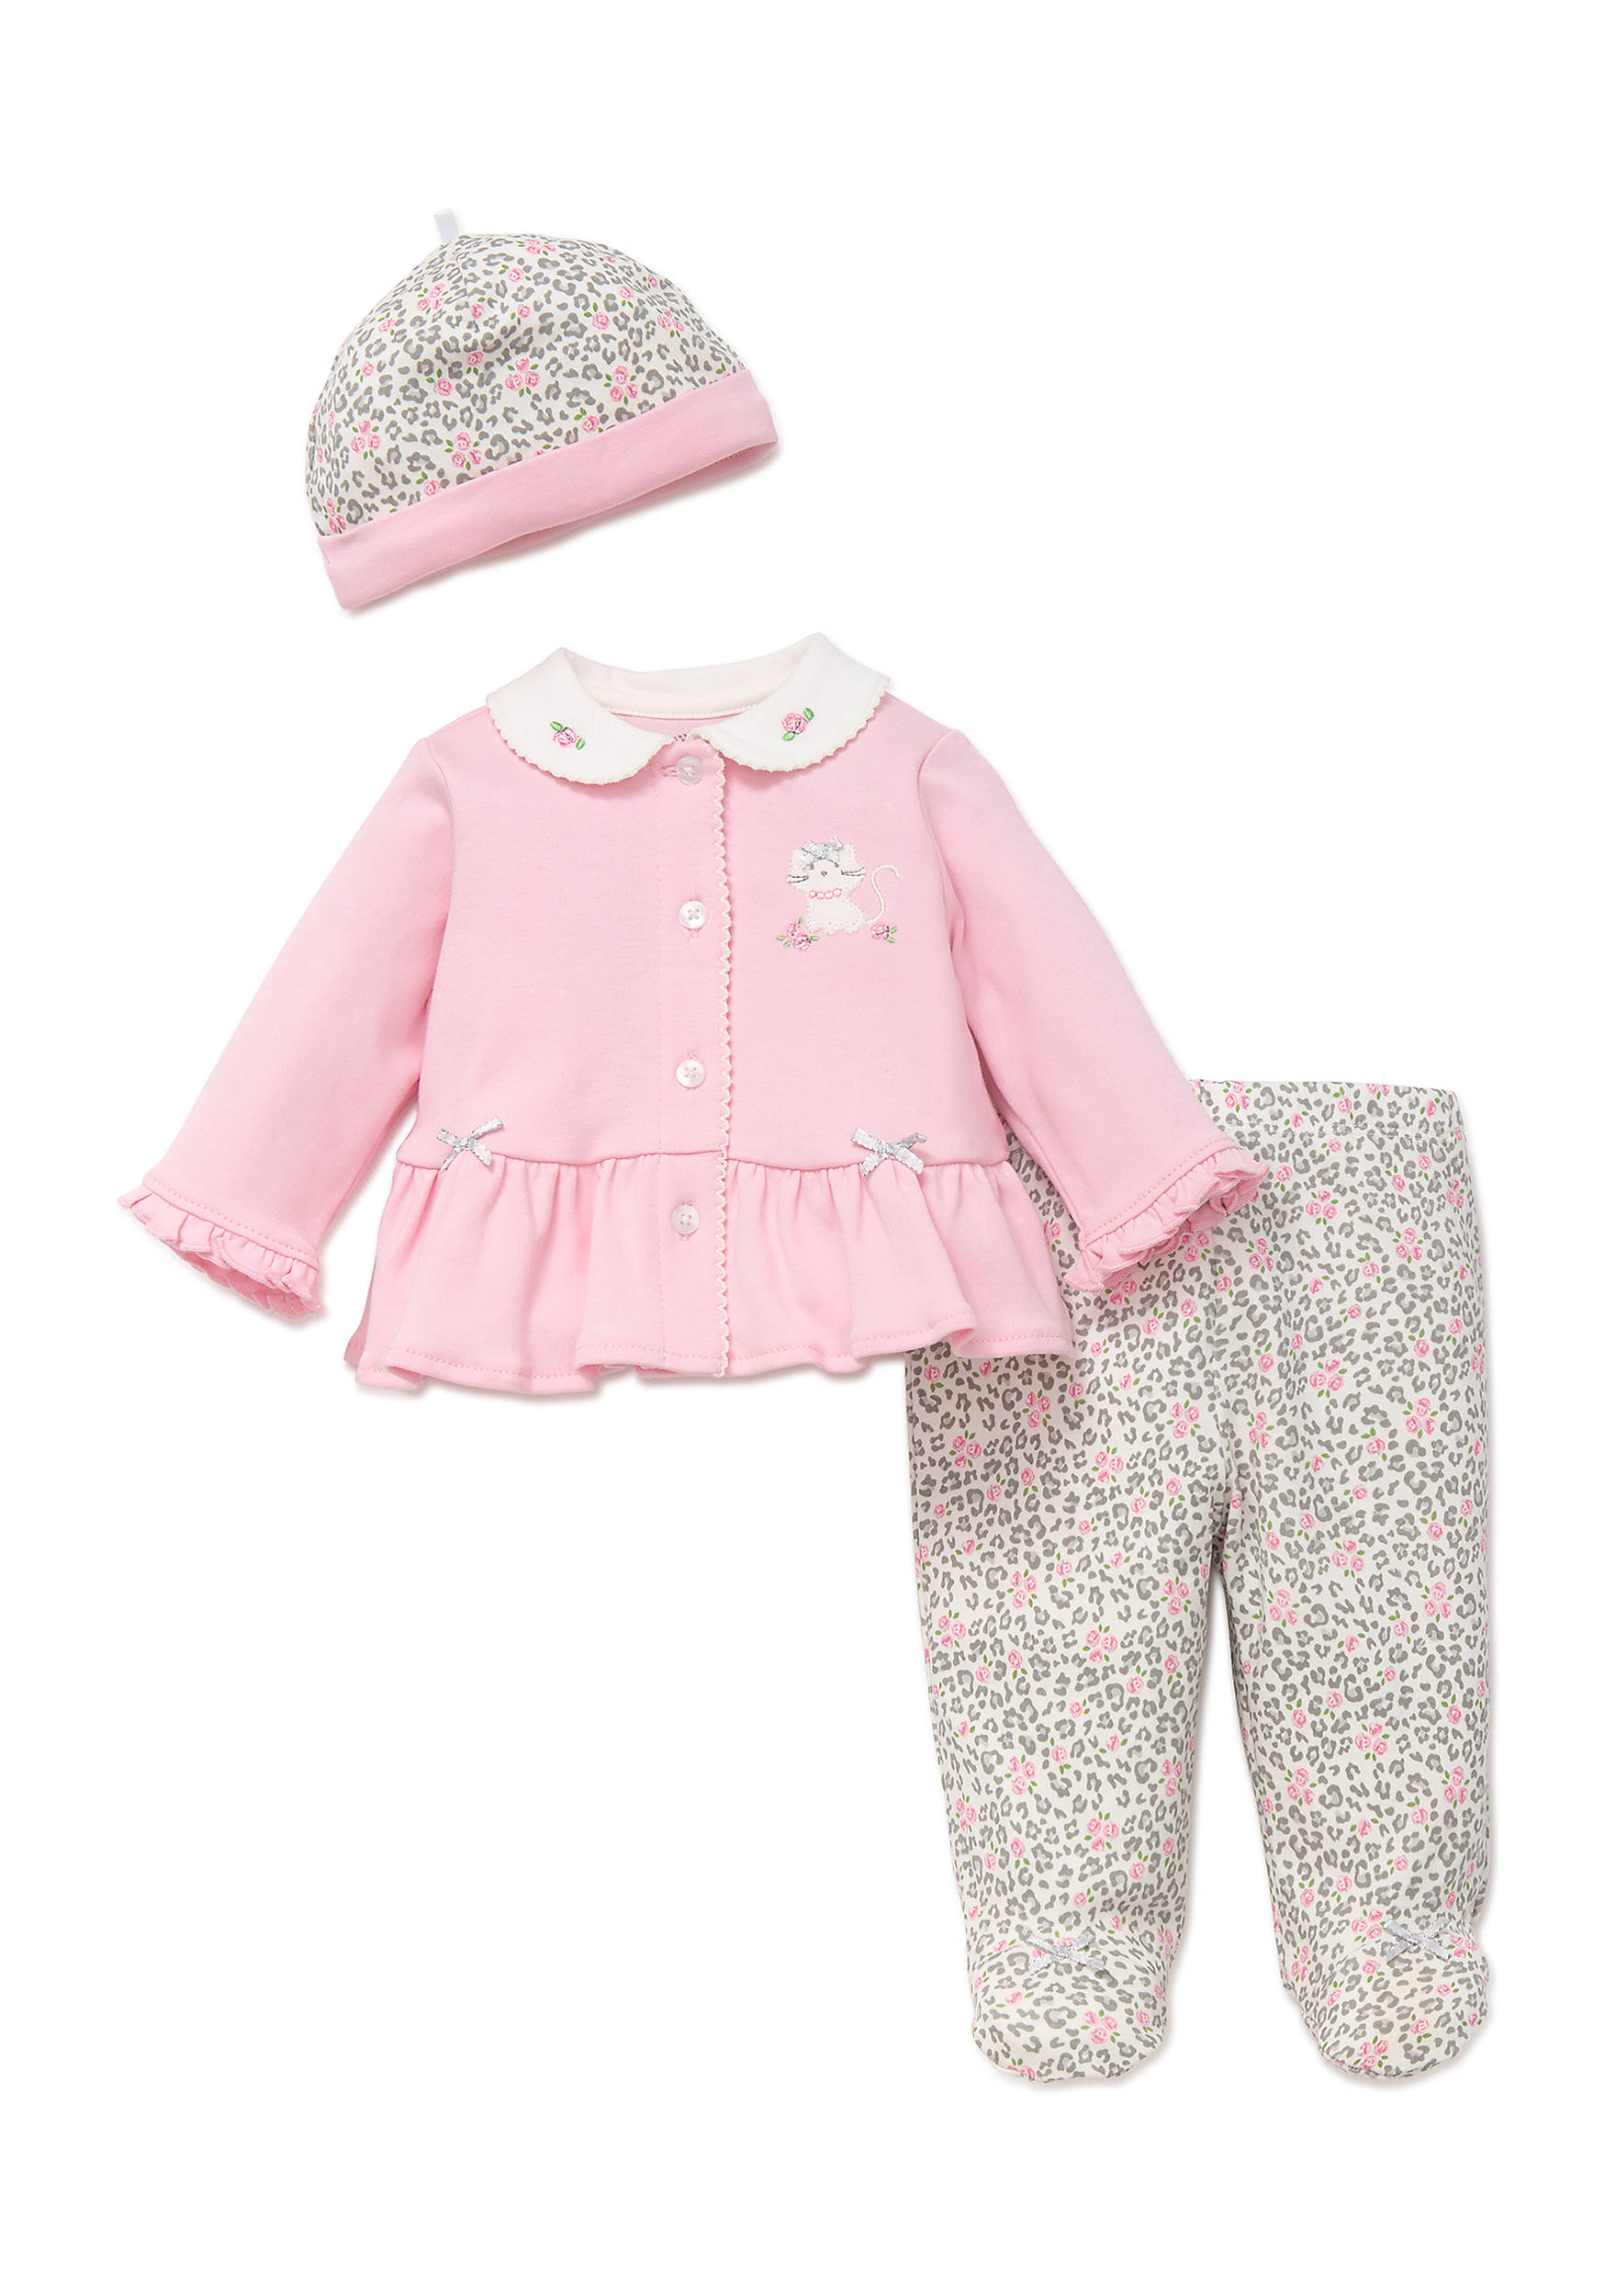 Little Me 3-Piece Leopard Cardigan Set | belk